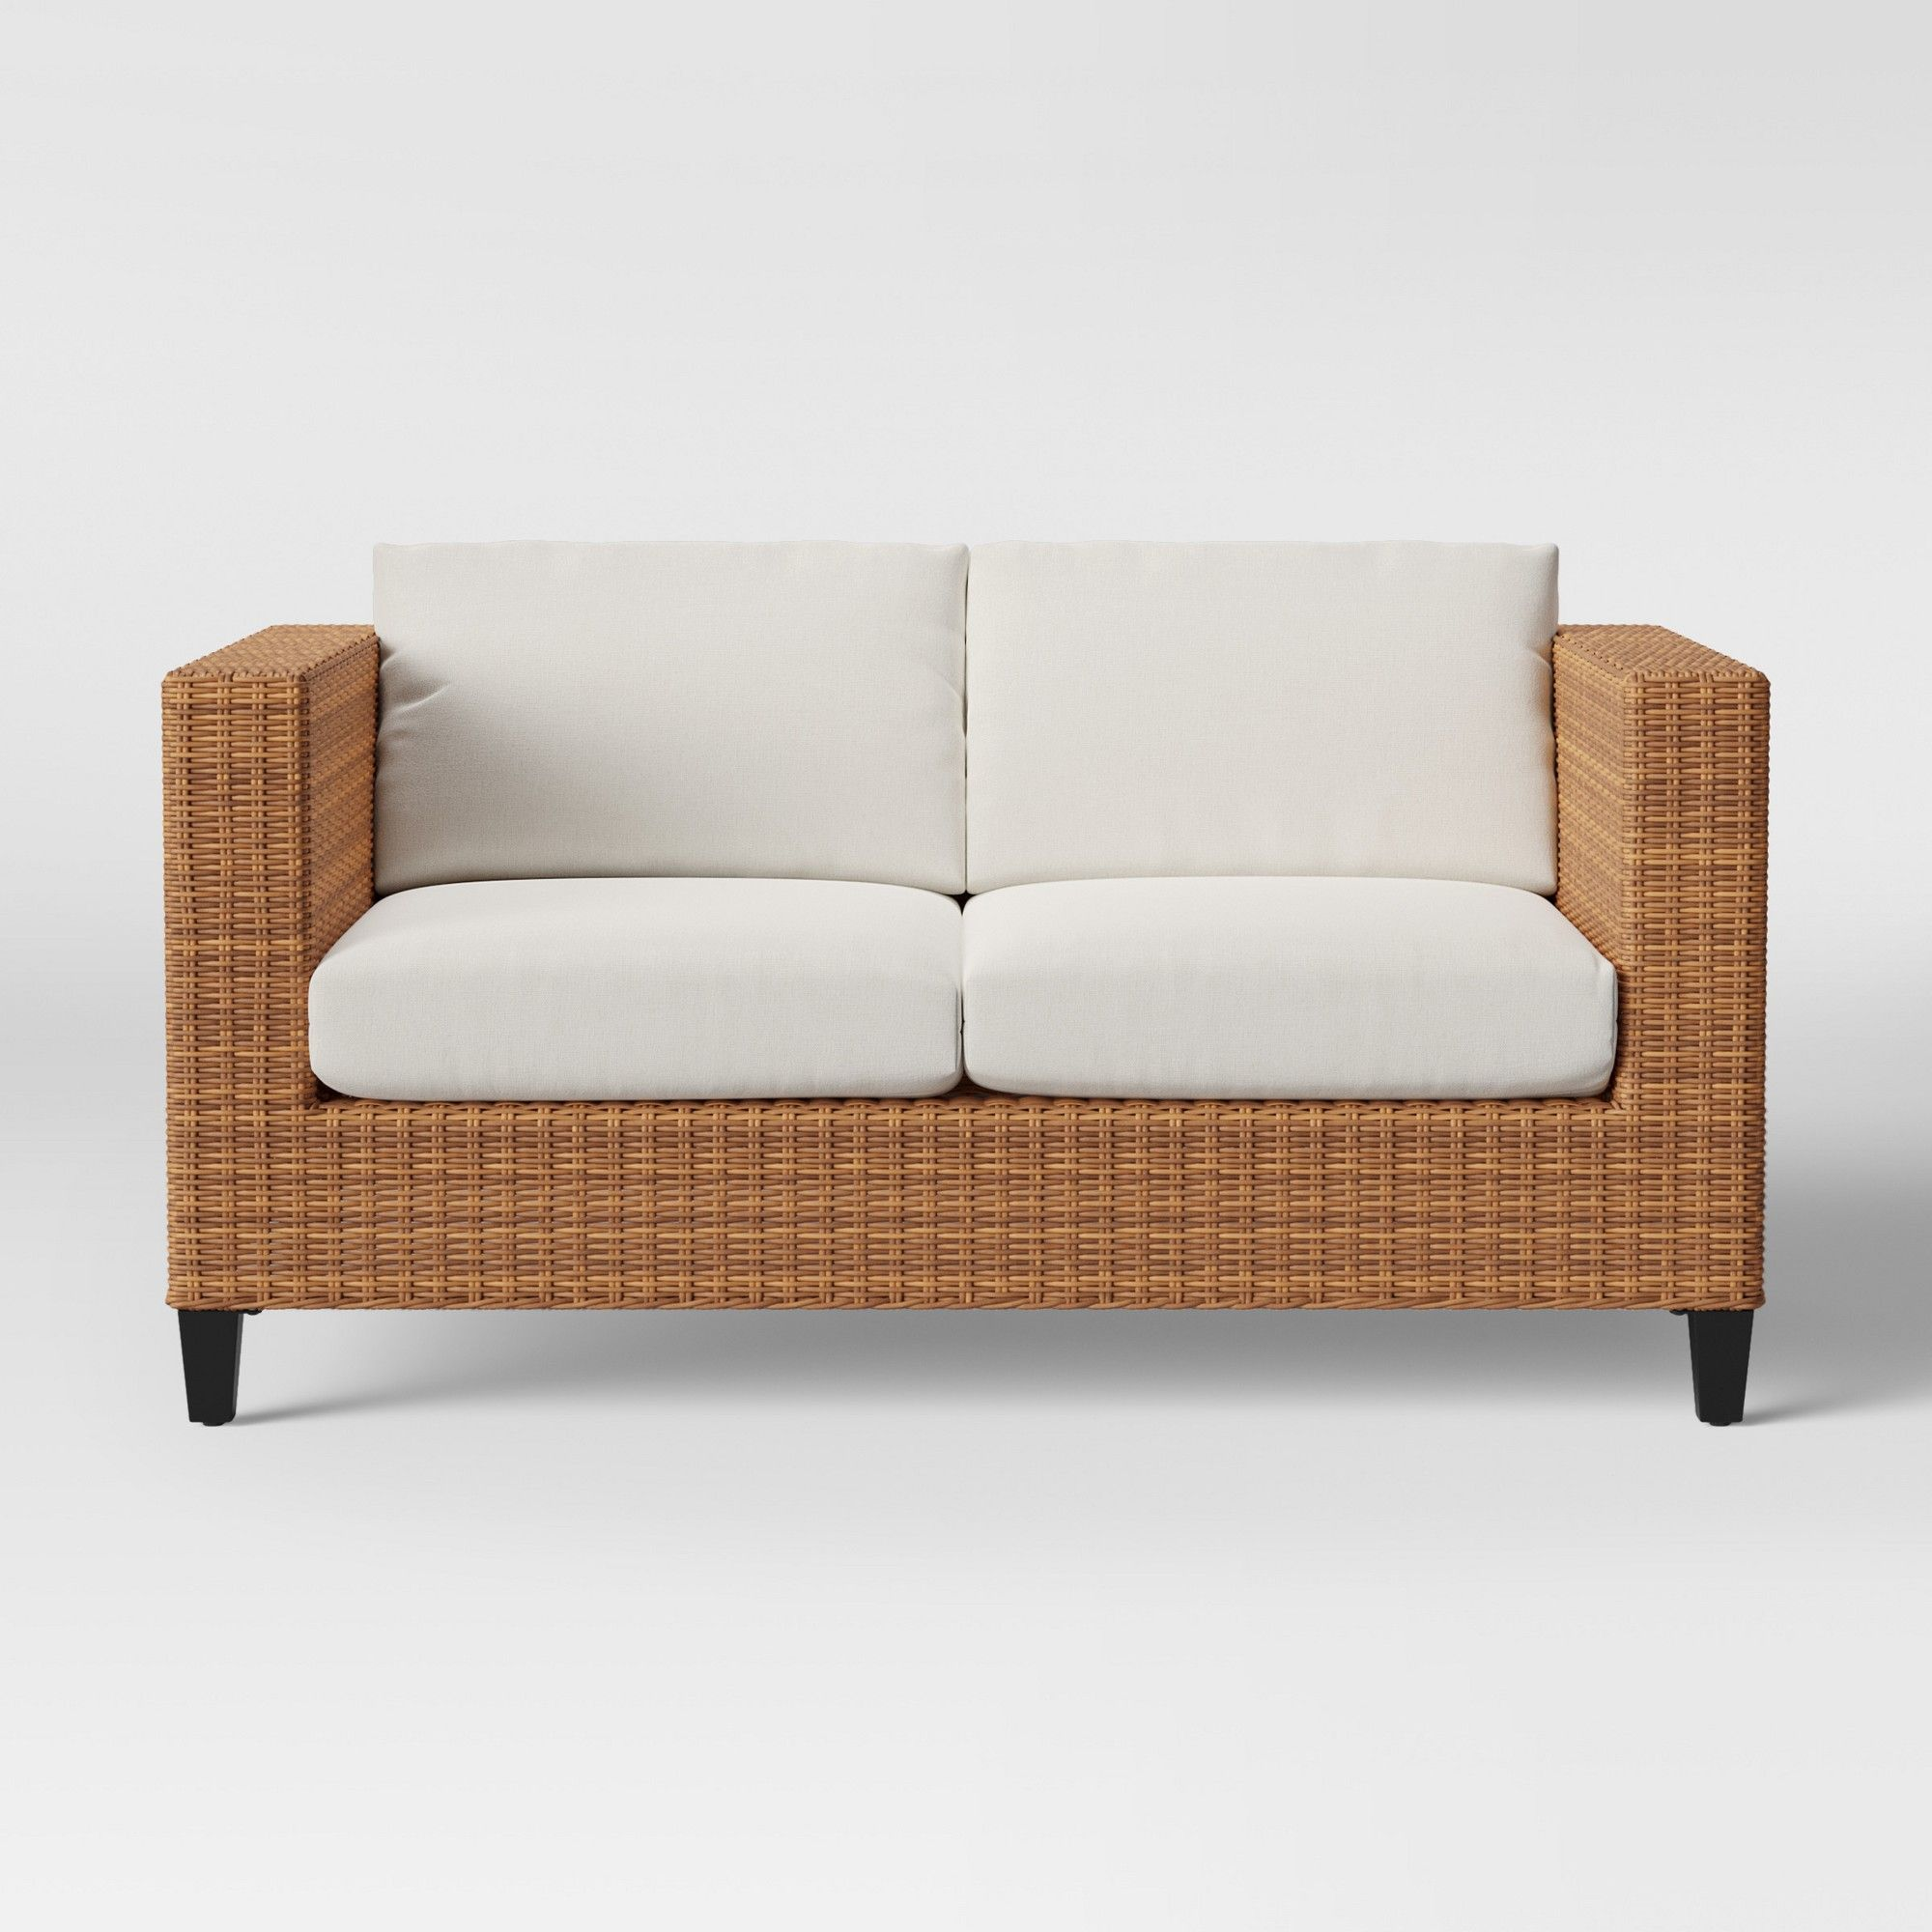 Swell Fullerton Steel Wicker Patio Loveseat Linen Project 62 In Theyellowbook Wood Chair Design Ideas Theyellowbookinfo